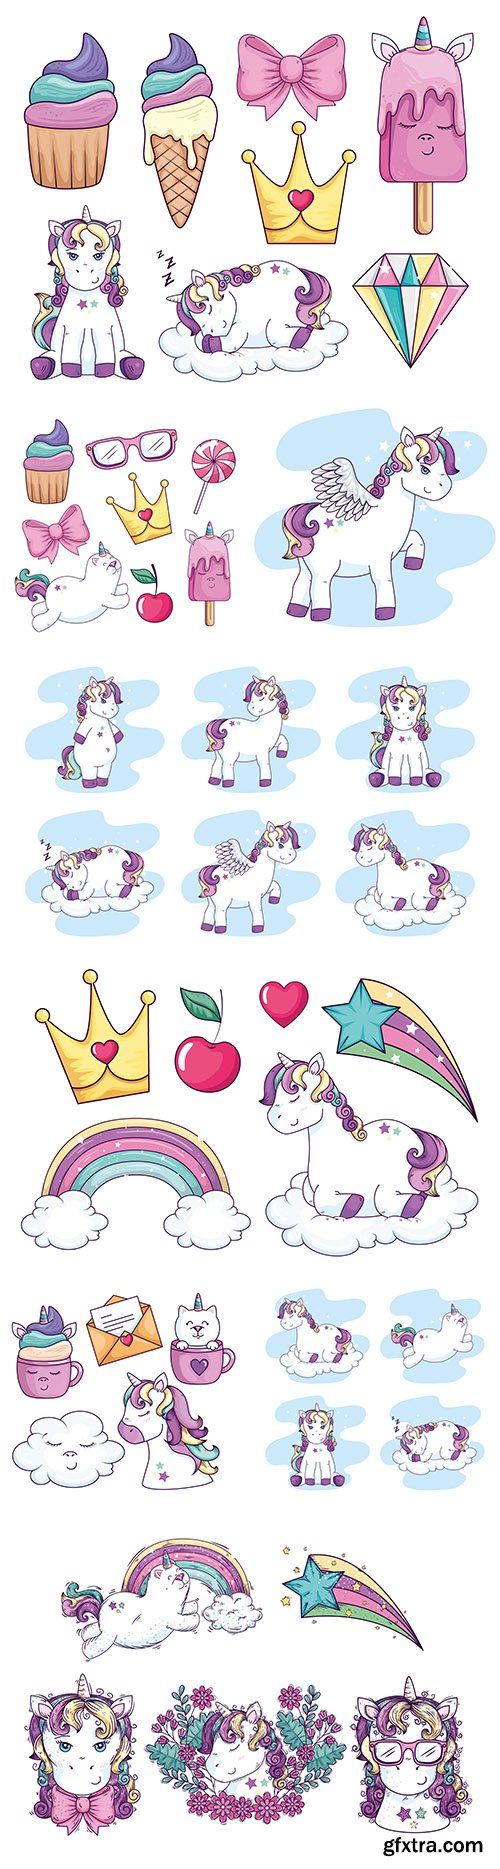 Unicorn with wings and sweets collection illustrations